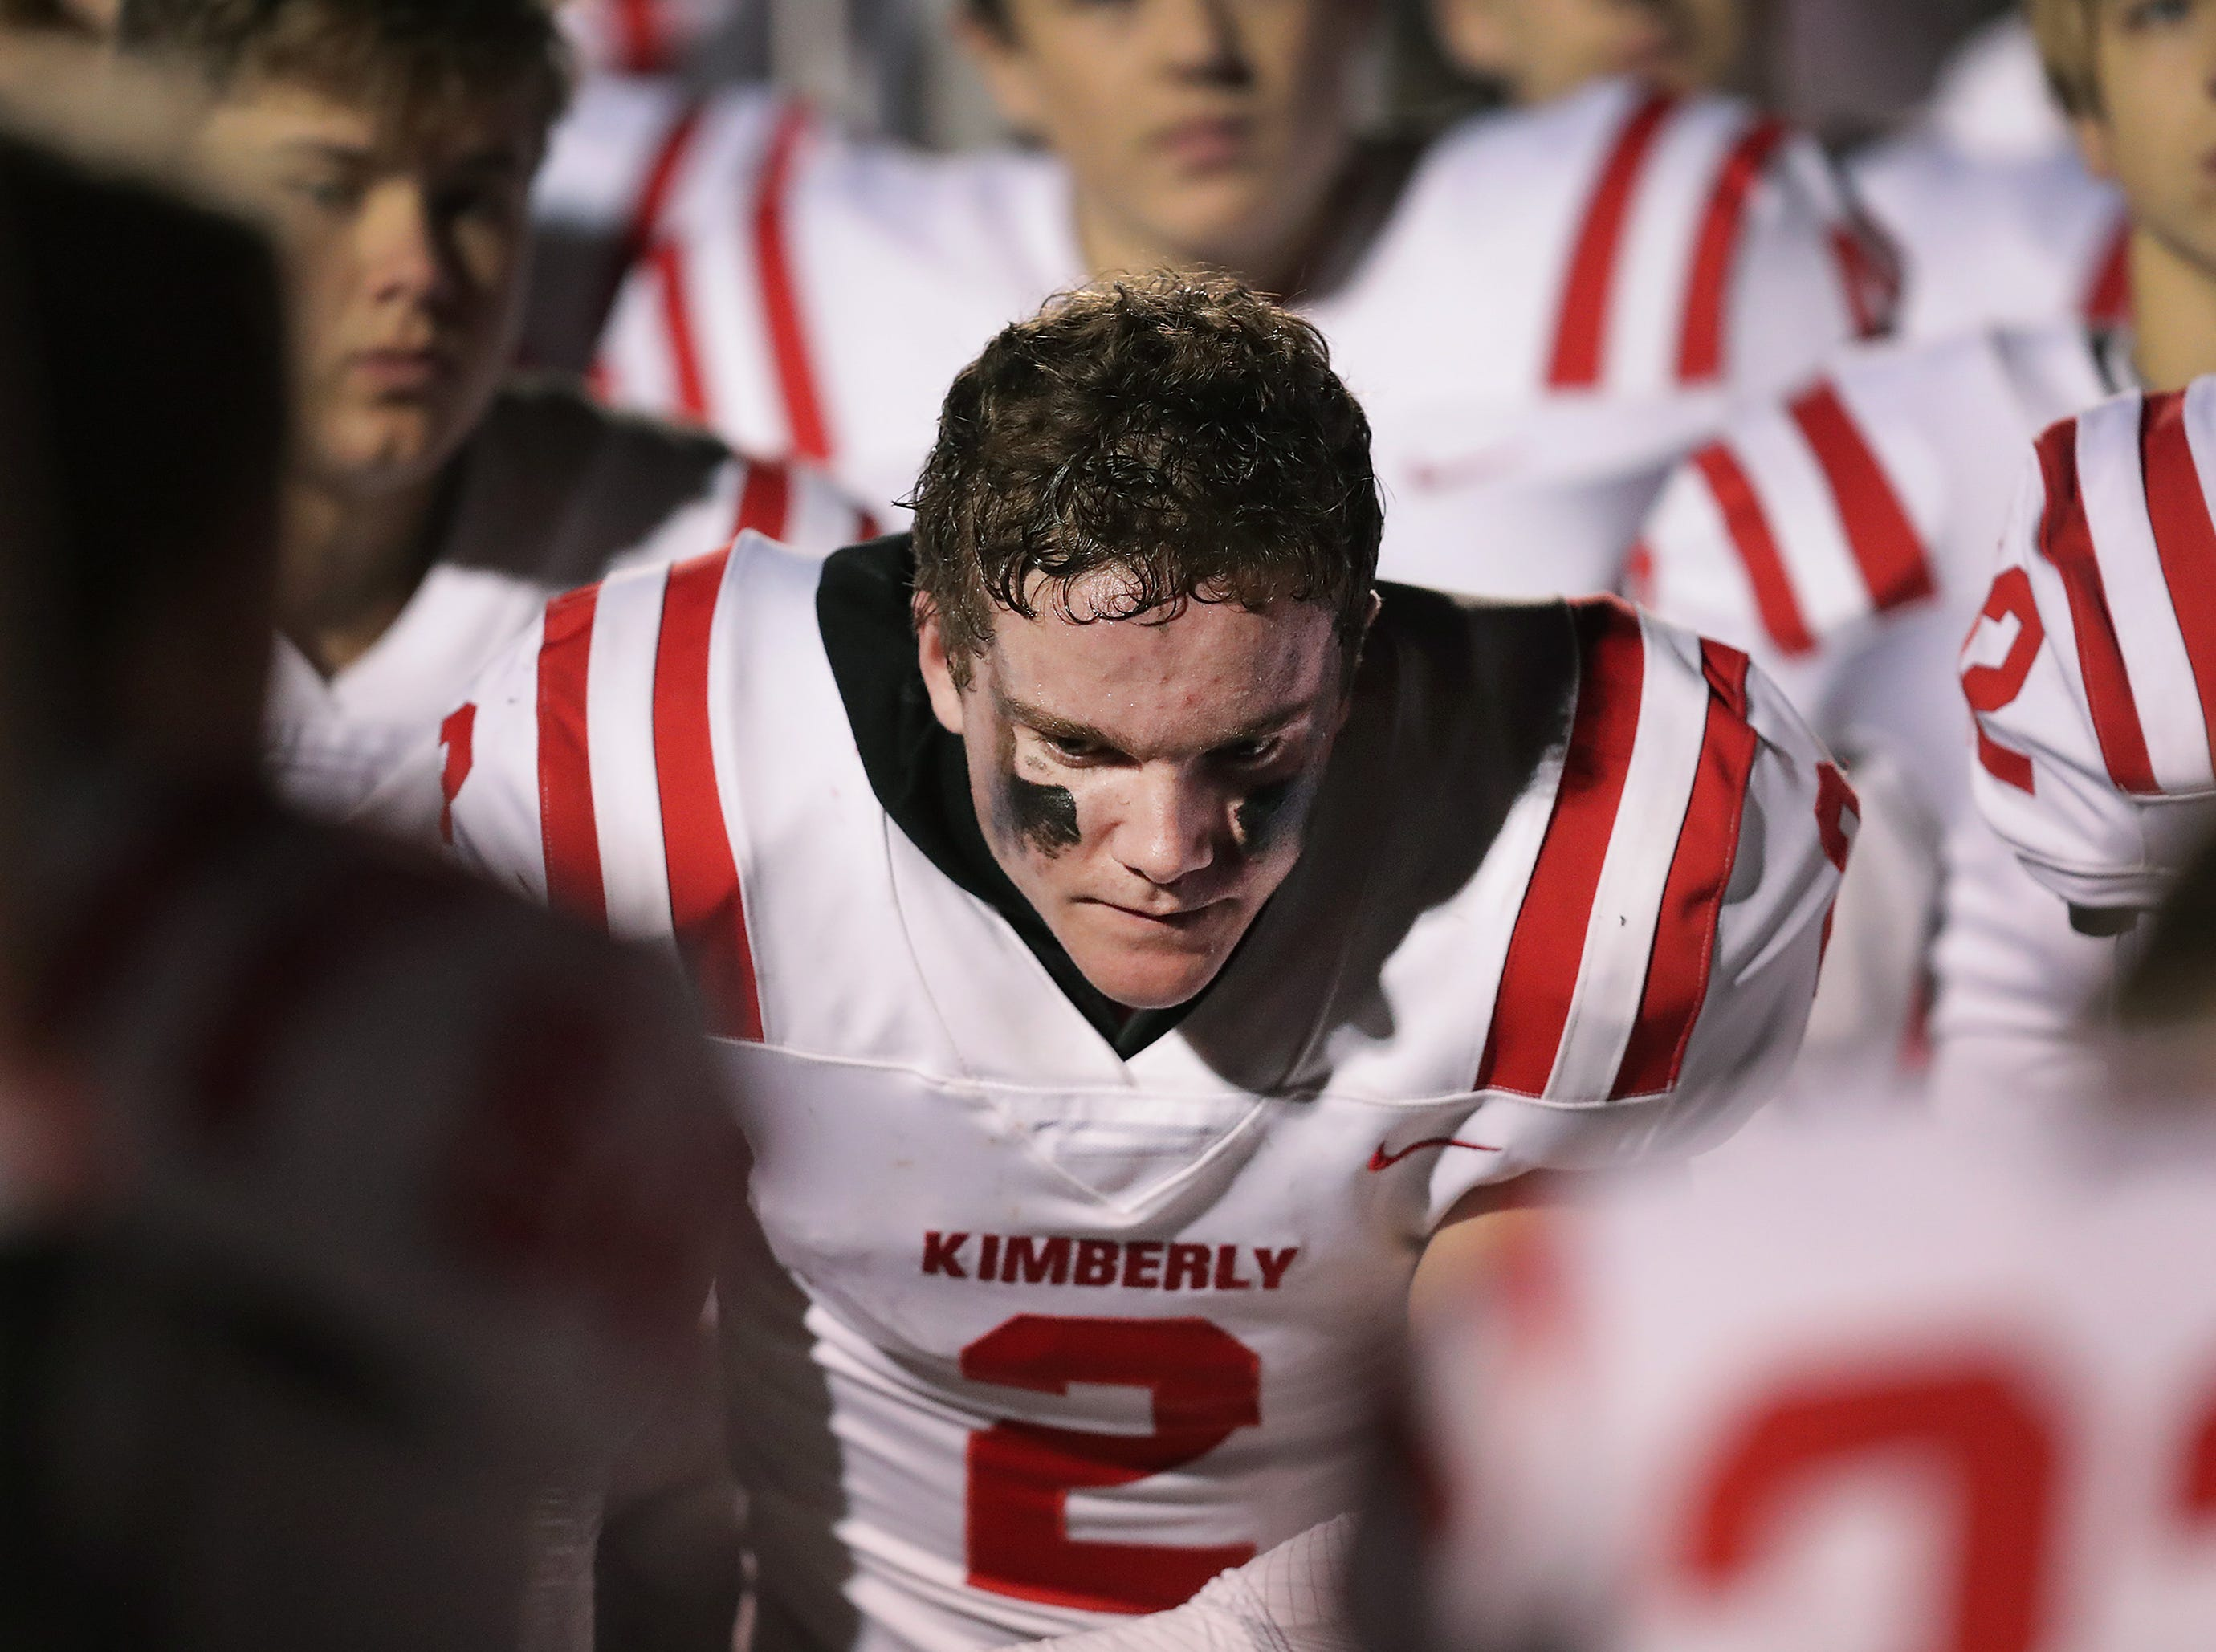 Kimberly High School's #2 Drew Lechnir against Bay Port High School during their WIAA Division 1 state quarterfinal football game on Friday, November 2, 2018, in Suamico, Wis.  Kimberly defeated Bay Port 38 to 20. Wm. Glasheen/USA TODAY NETWORK-Wisconsin.